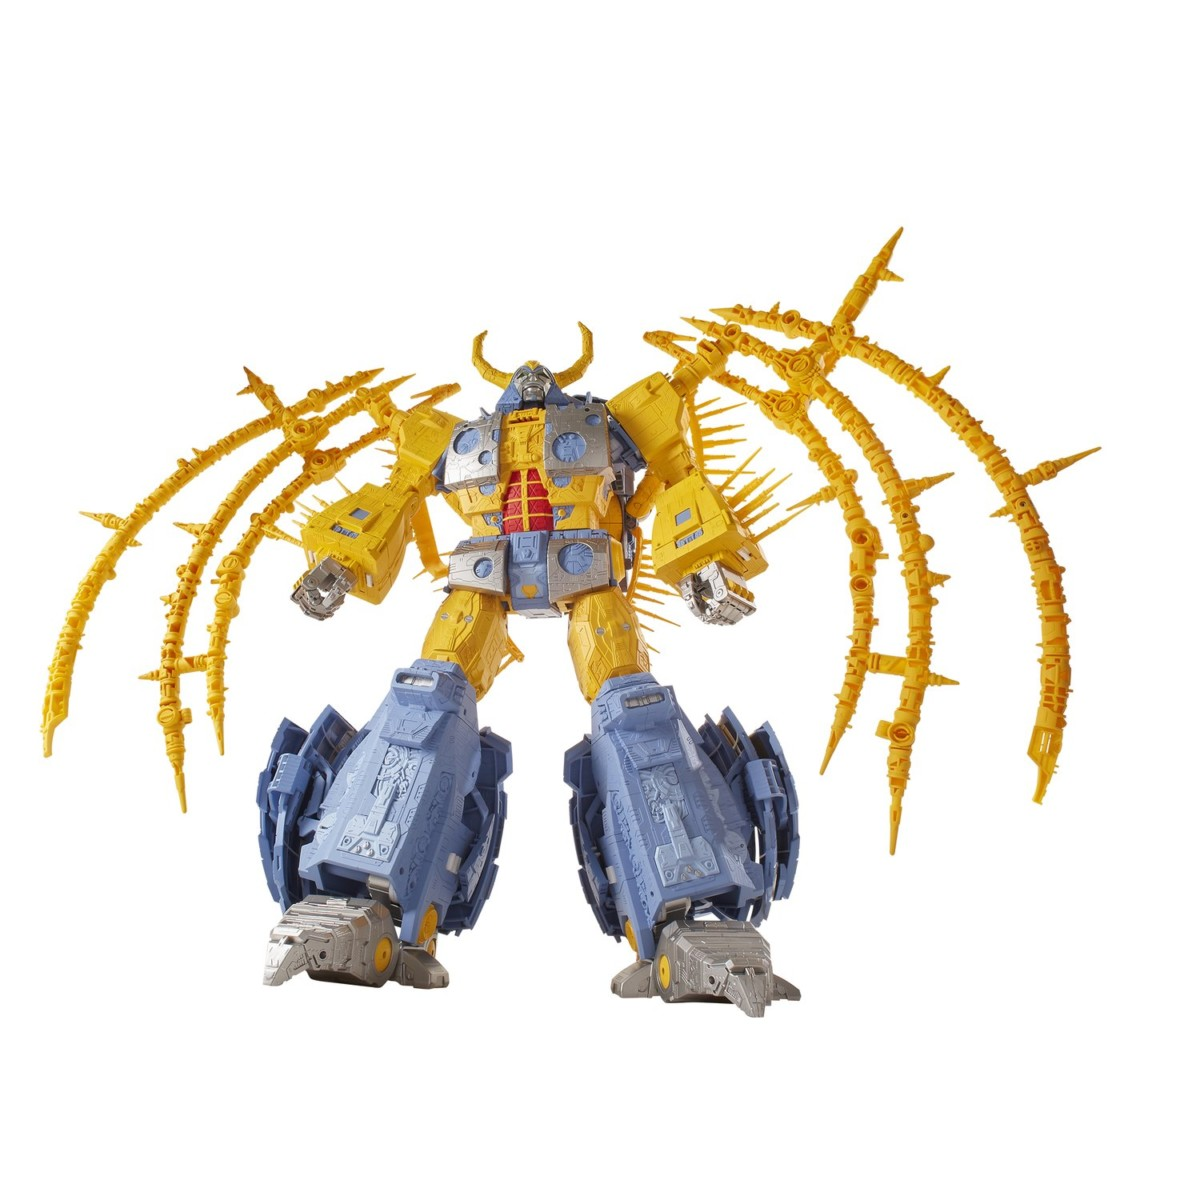 Hasbro Unveils Largest Transformers Figure Ever In The War